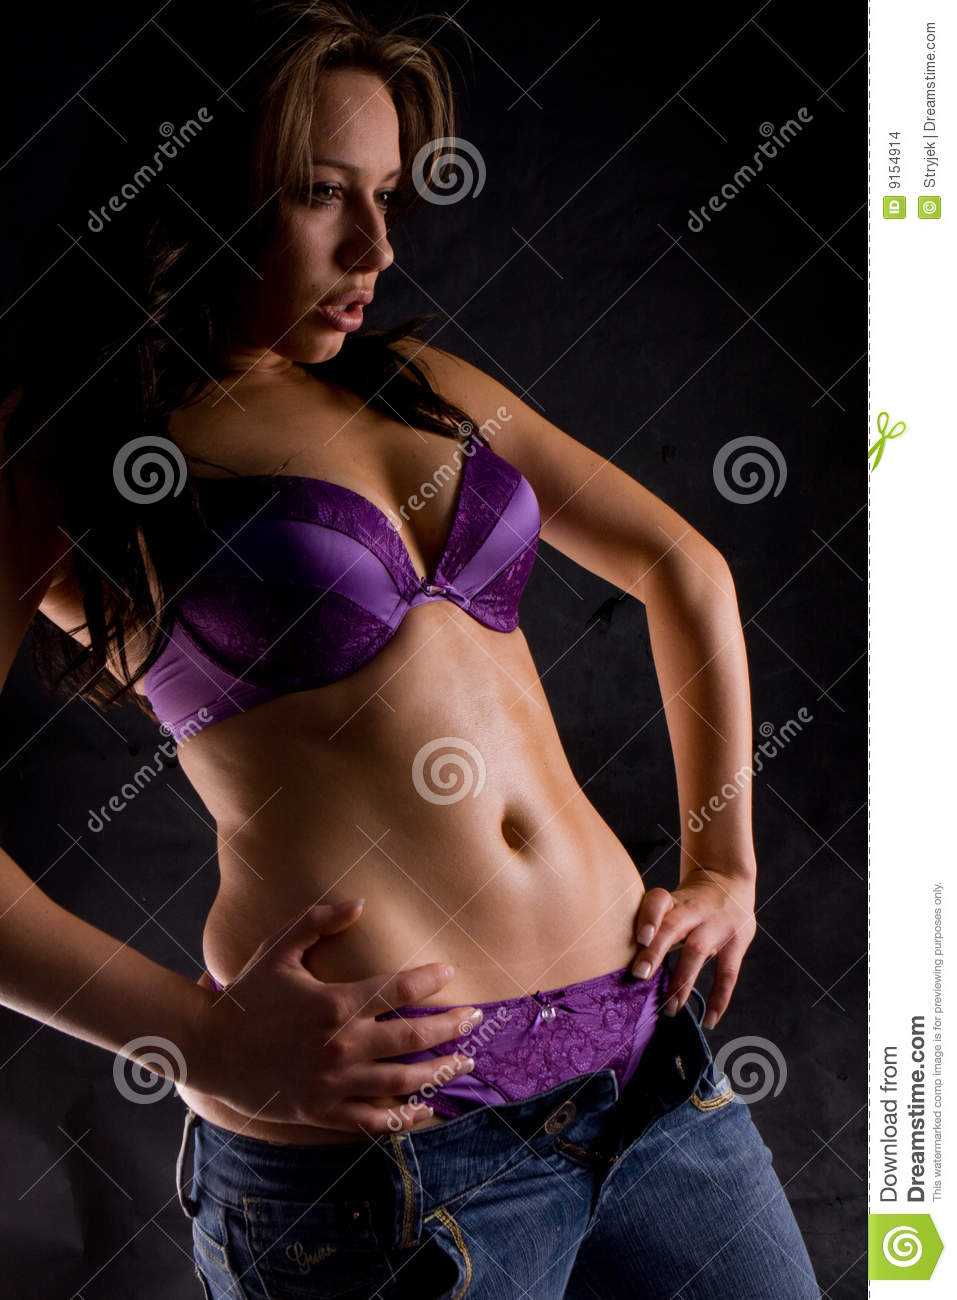 Sexy Belly Stock Images - Image: 9154914